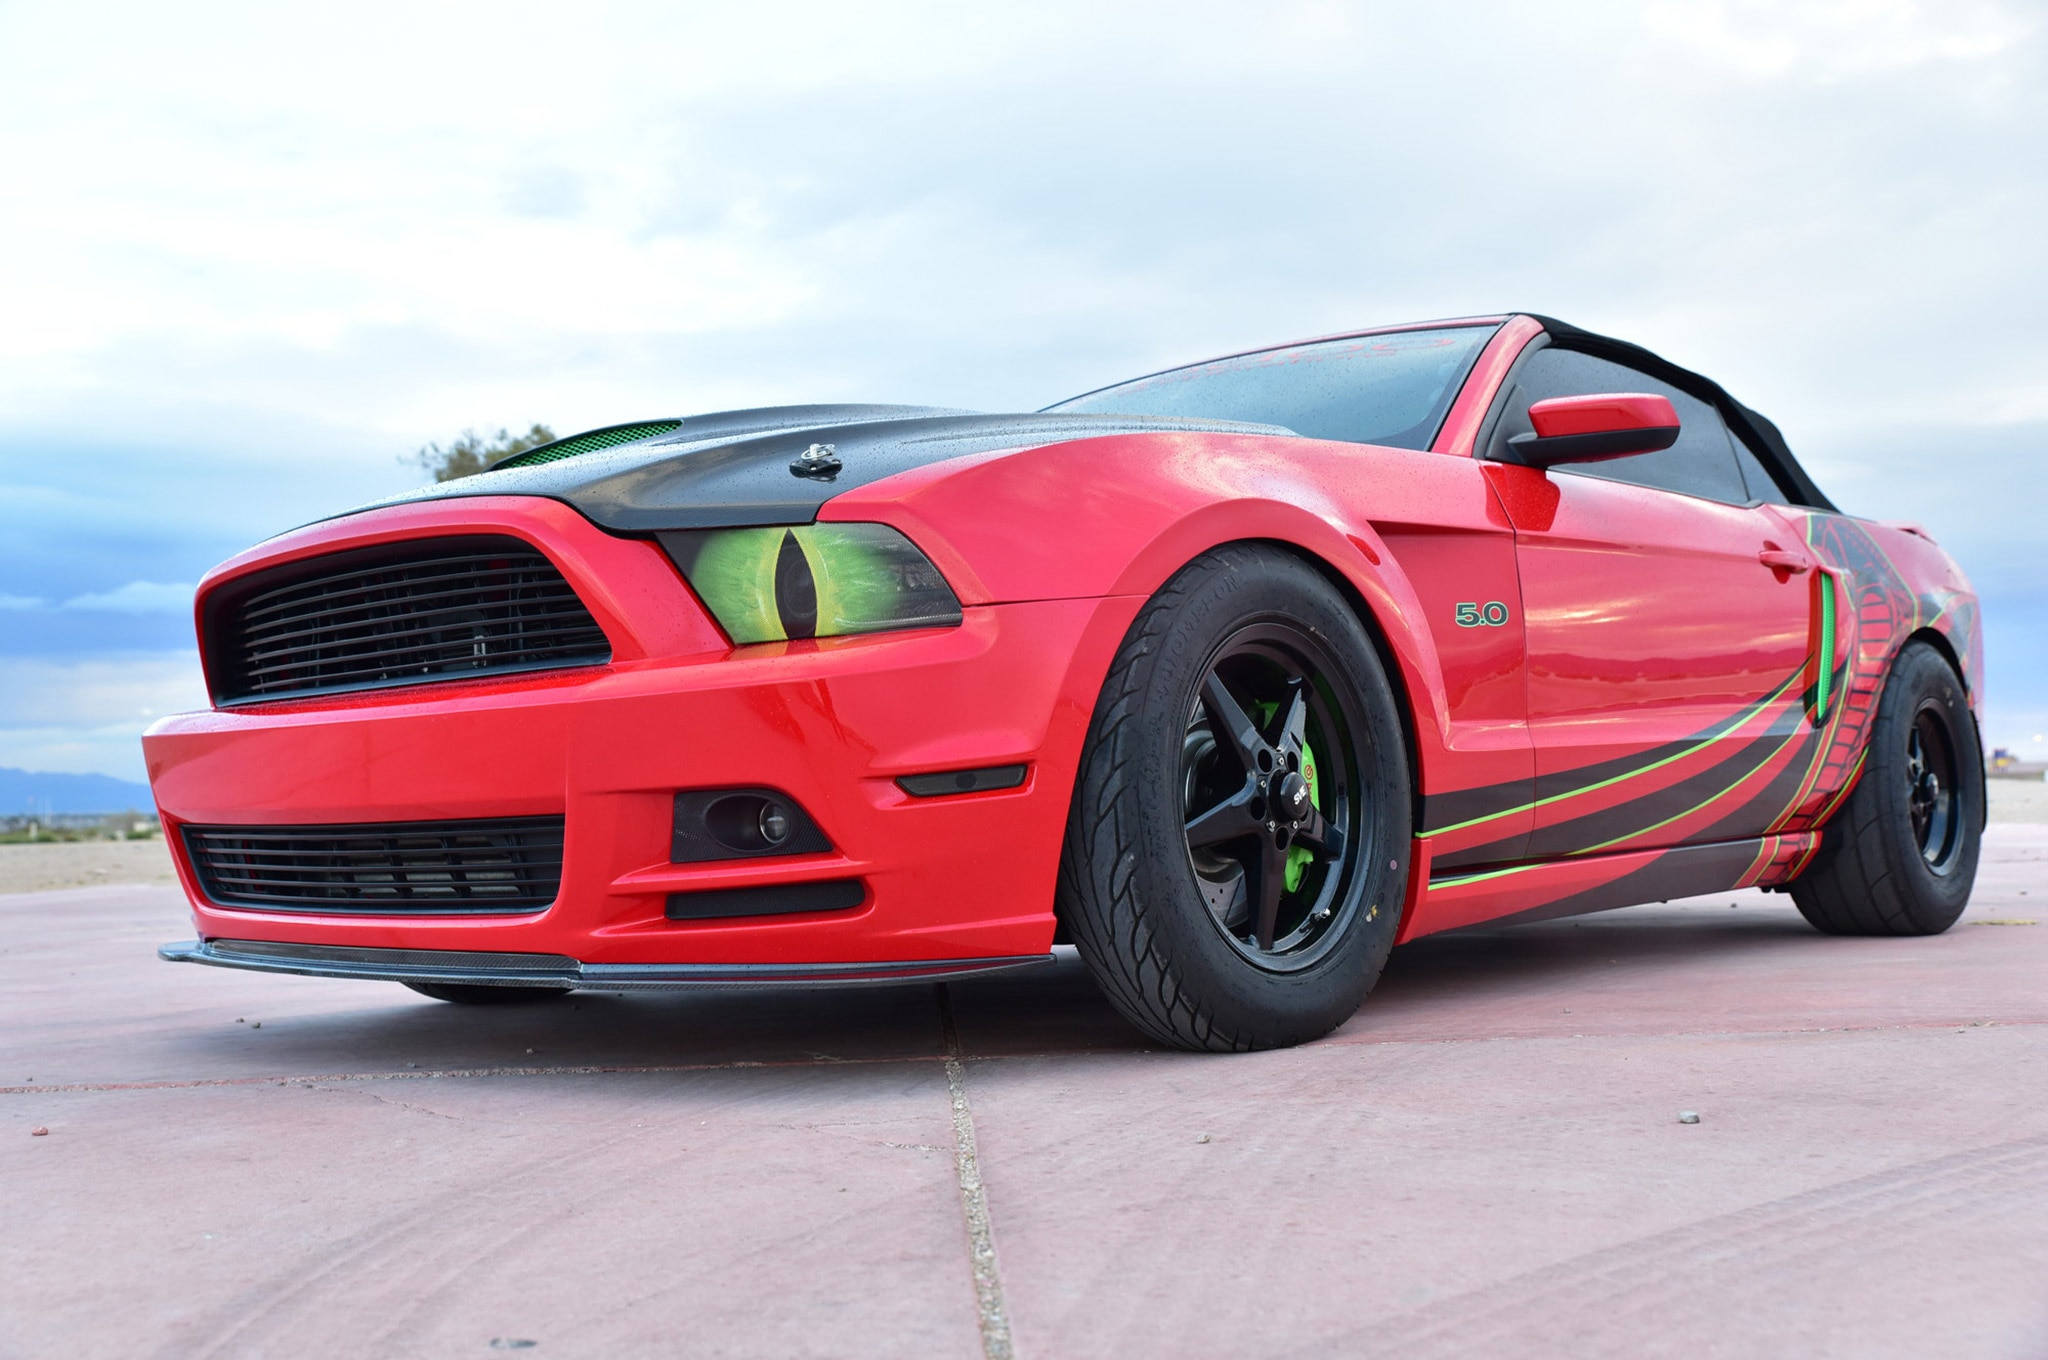 2013 Ford Mustang California Special Red Snake Eyes 010